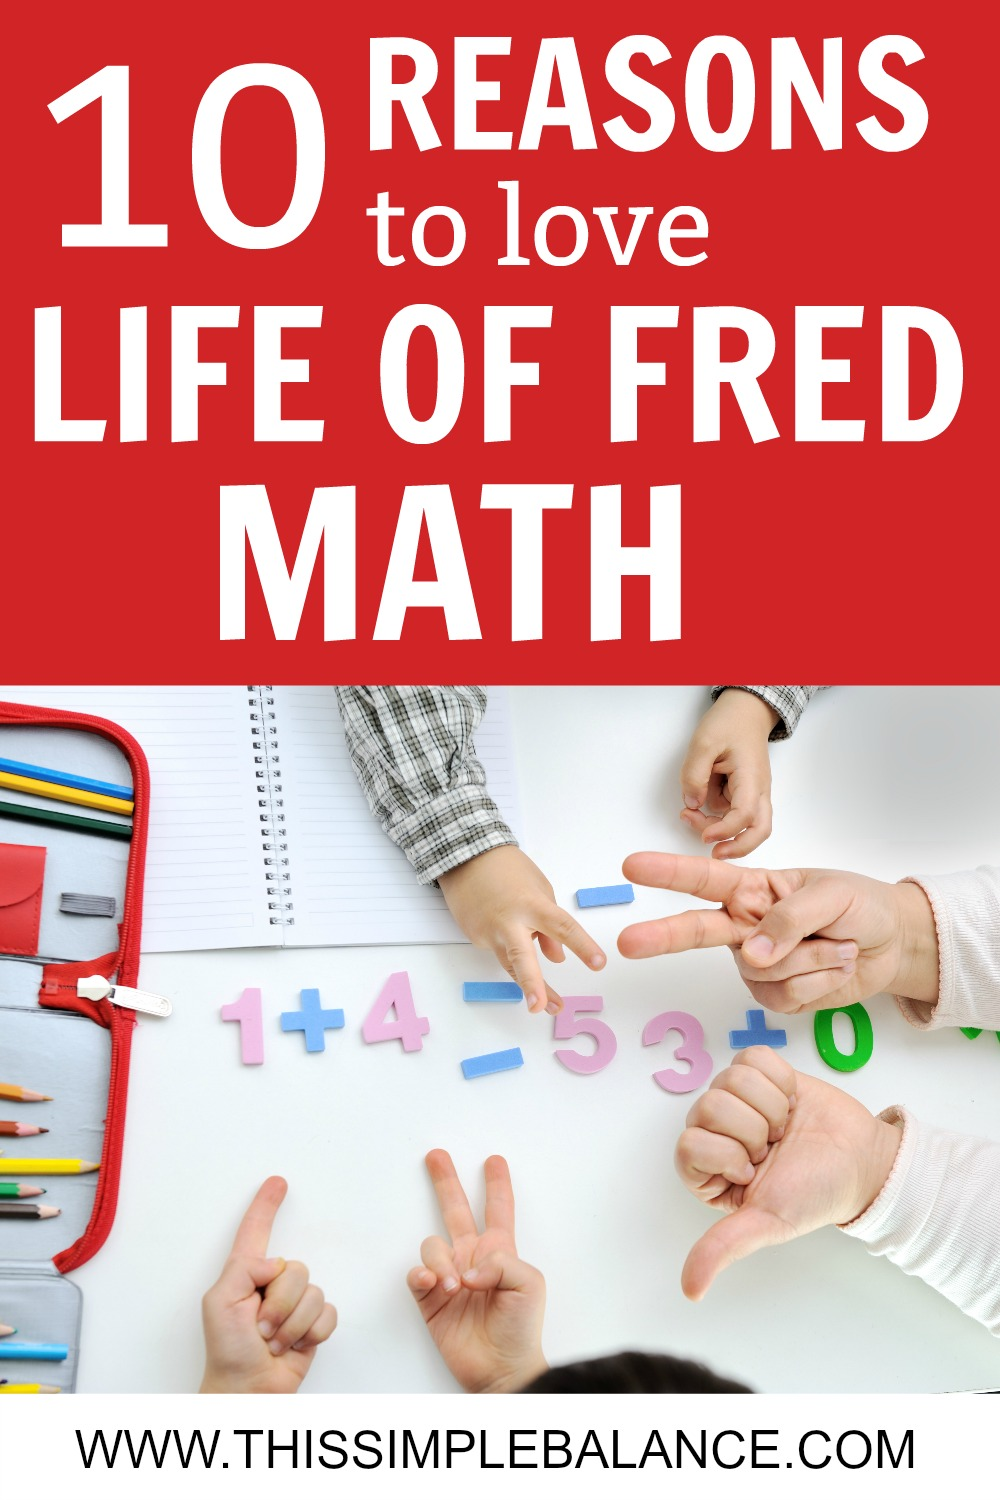 Homeschool Math Curriculums: SO many to choose from! We tried three before we found Life of Fred Math. Here are 10 reasons to love it, but also honest thoughts on why it might not work for you.